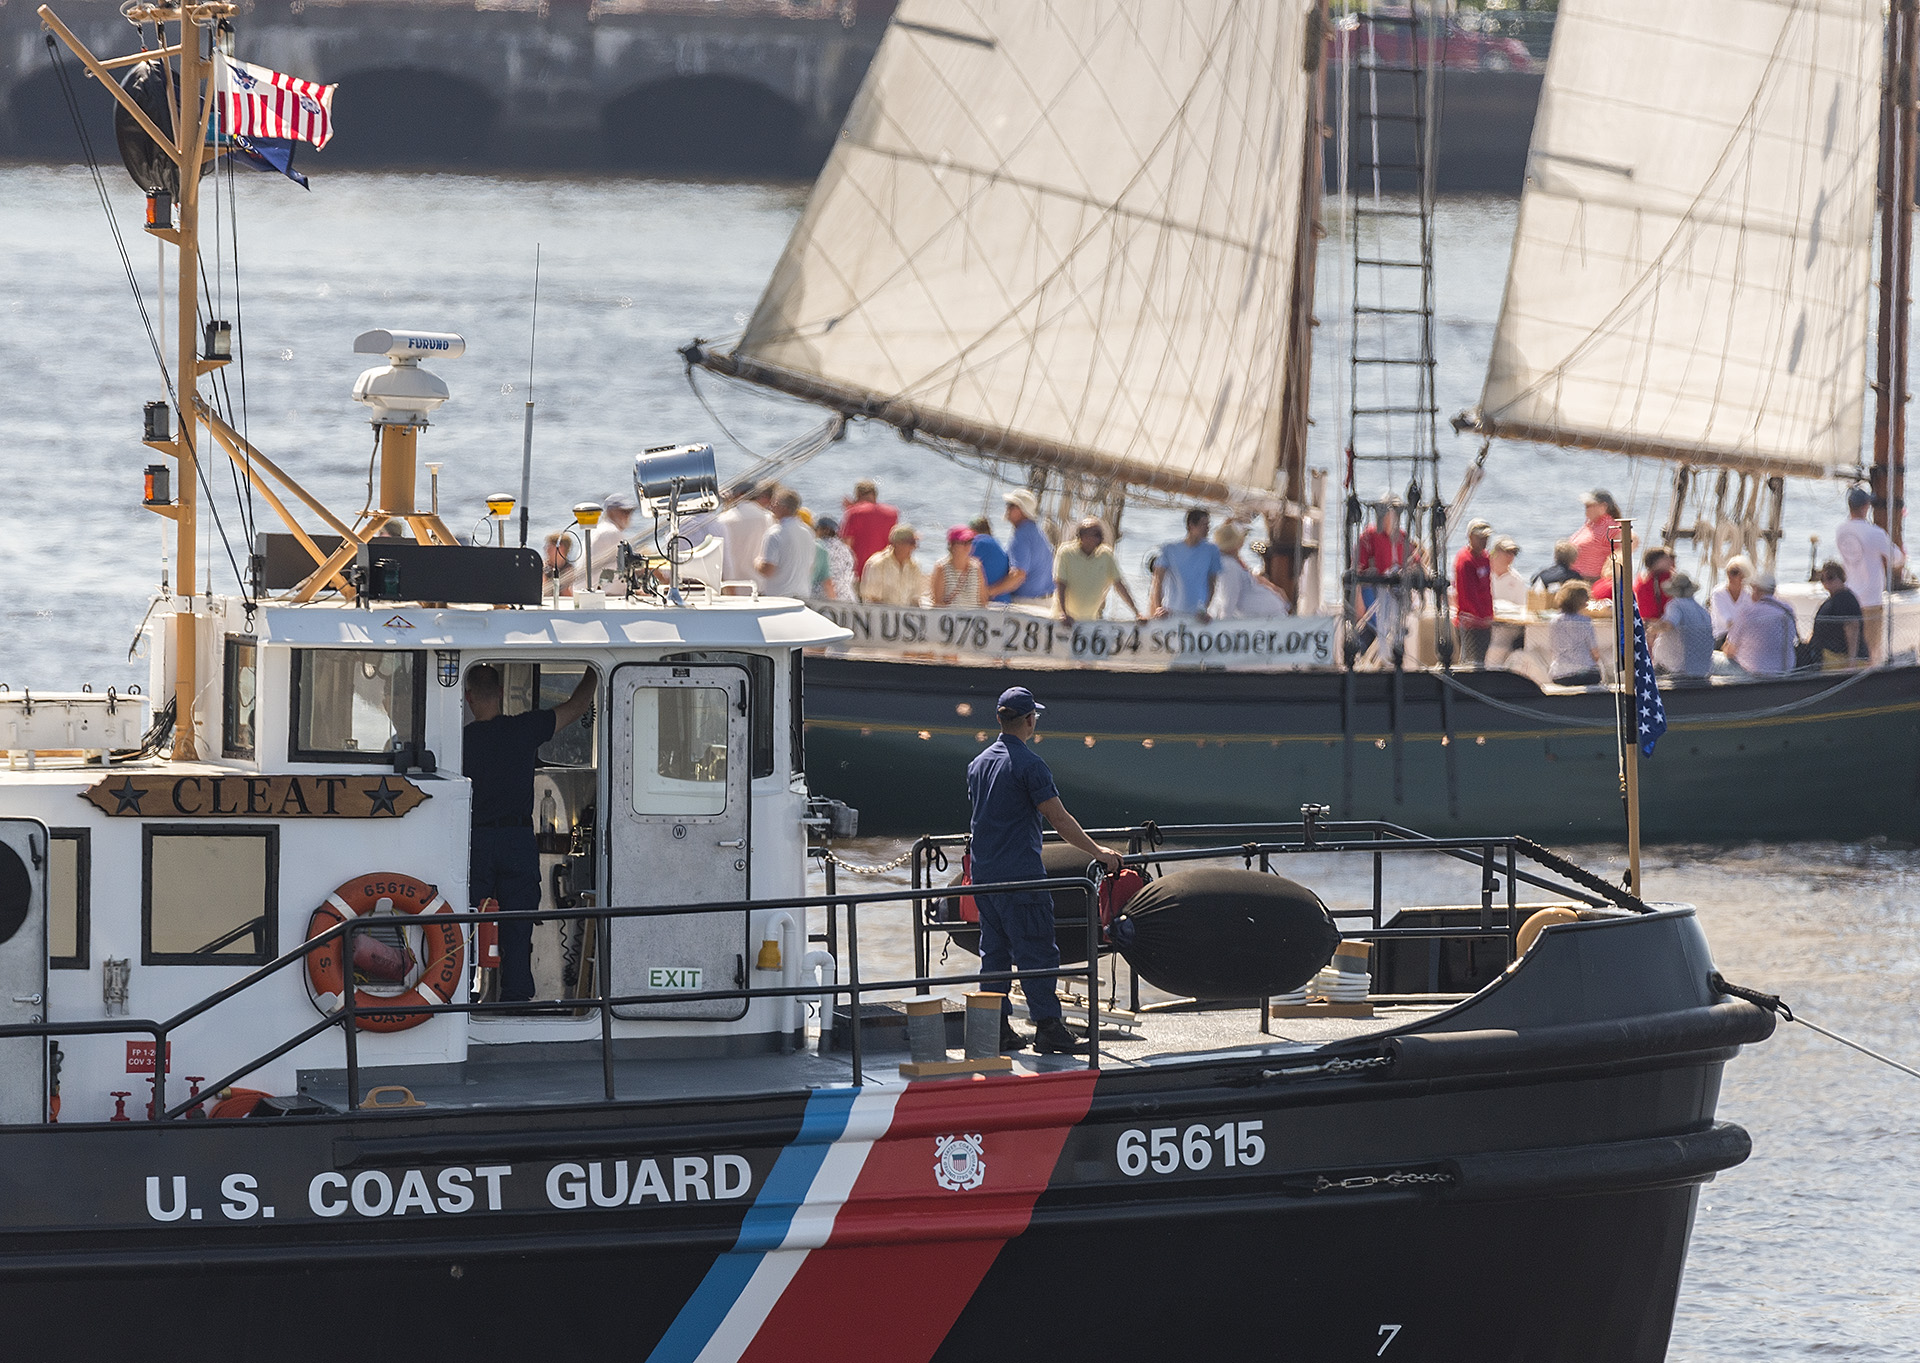 "<div class=""meta image-caption""><div class=""origin-logo origin-image none""><span>none</span></div><span class=""caption-text"">Images from the Tall Ships Parade of Sail along Penn's Landing and Camden Waterfront.</span></div>"